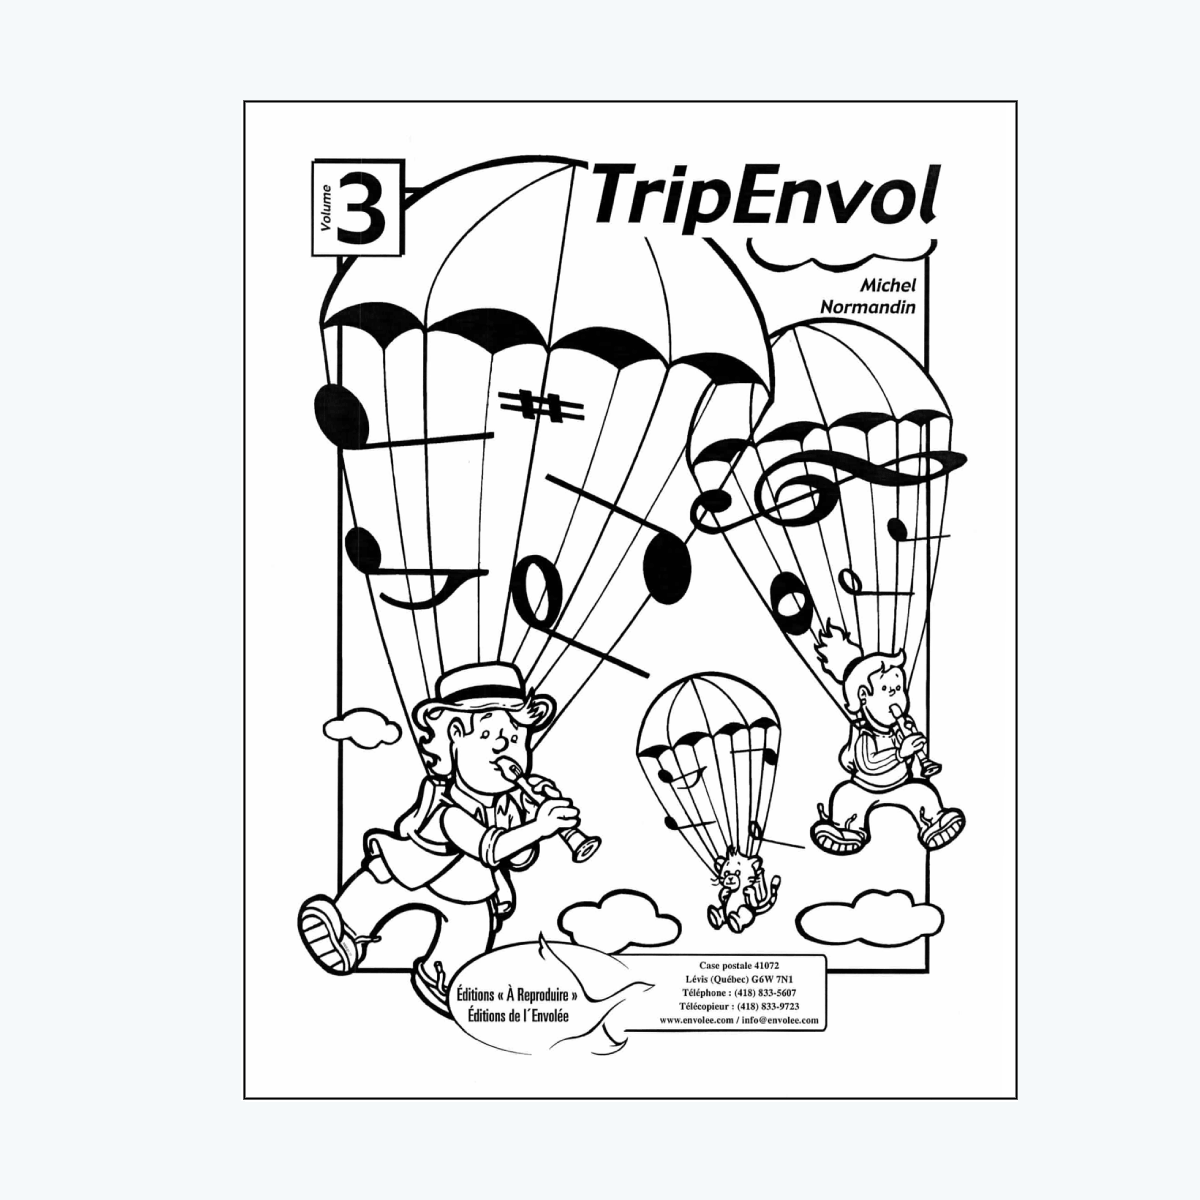 TripEnvol 1 and MP3